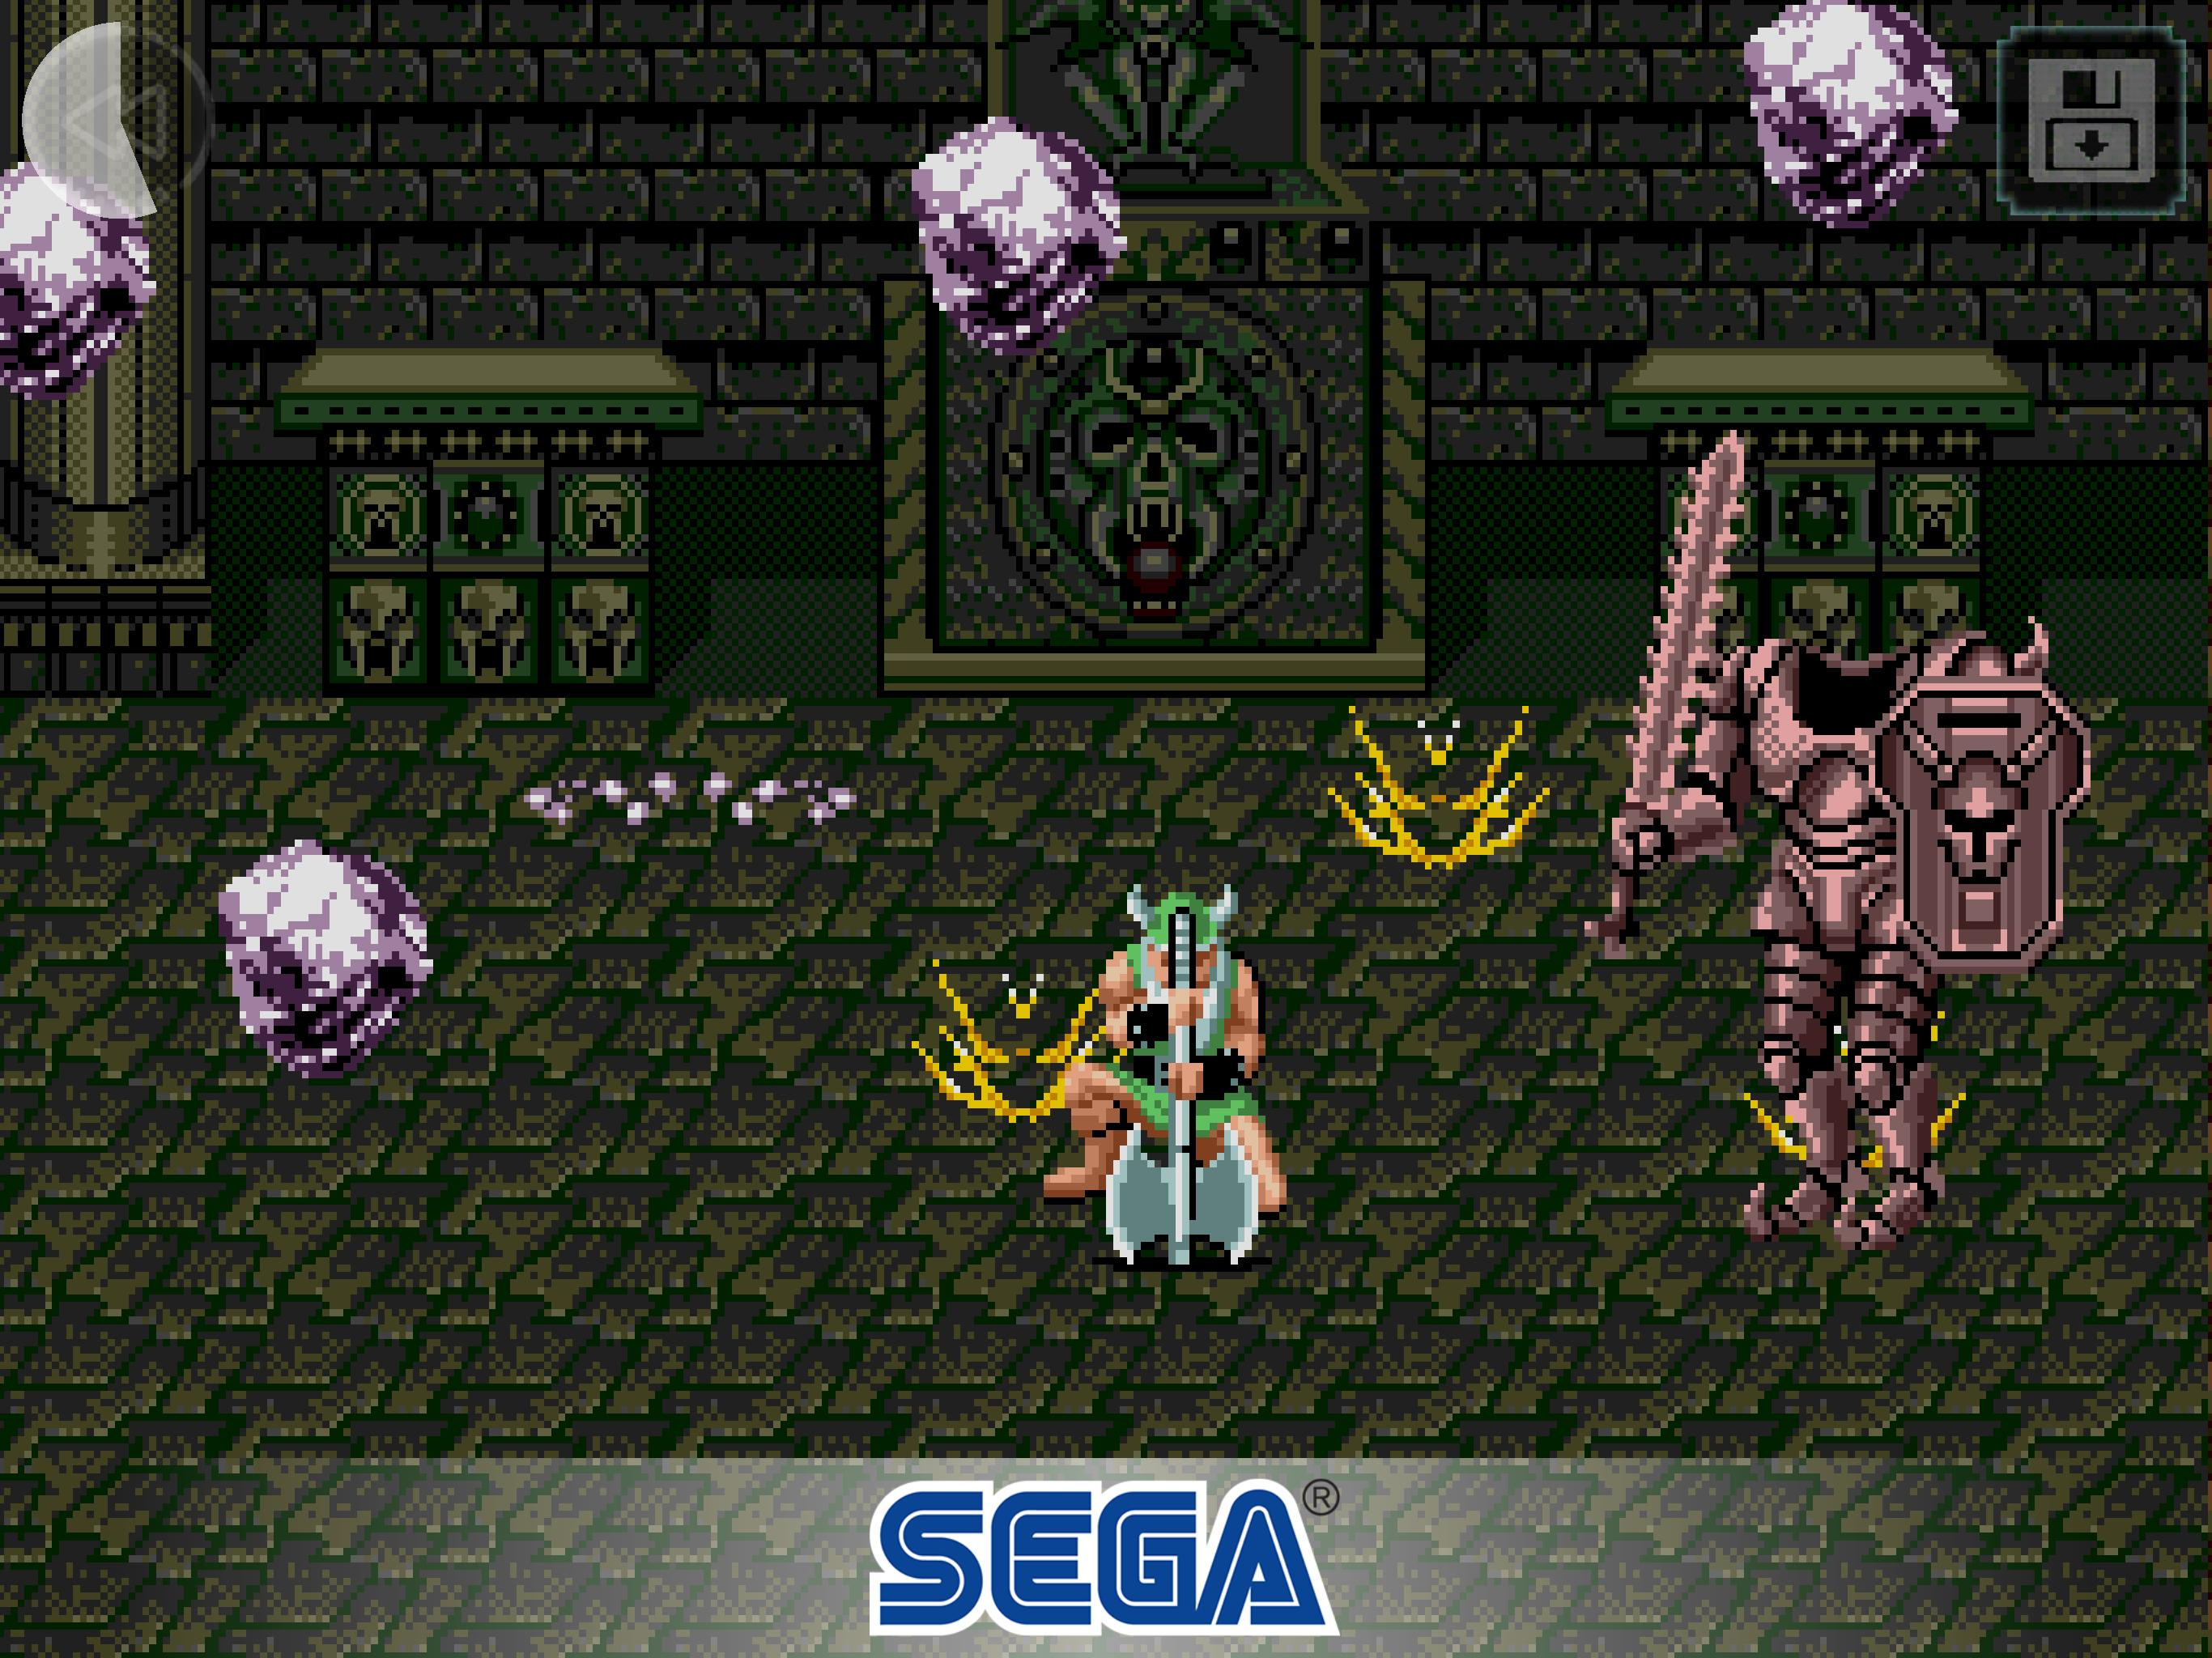 Golden Axe Classics for Android - APK Download